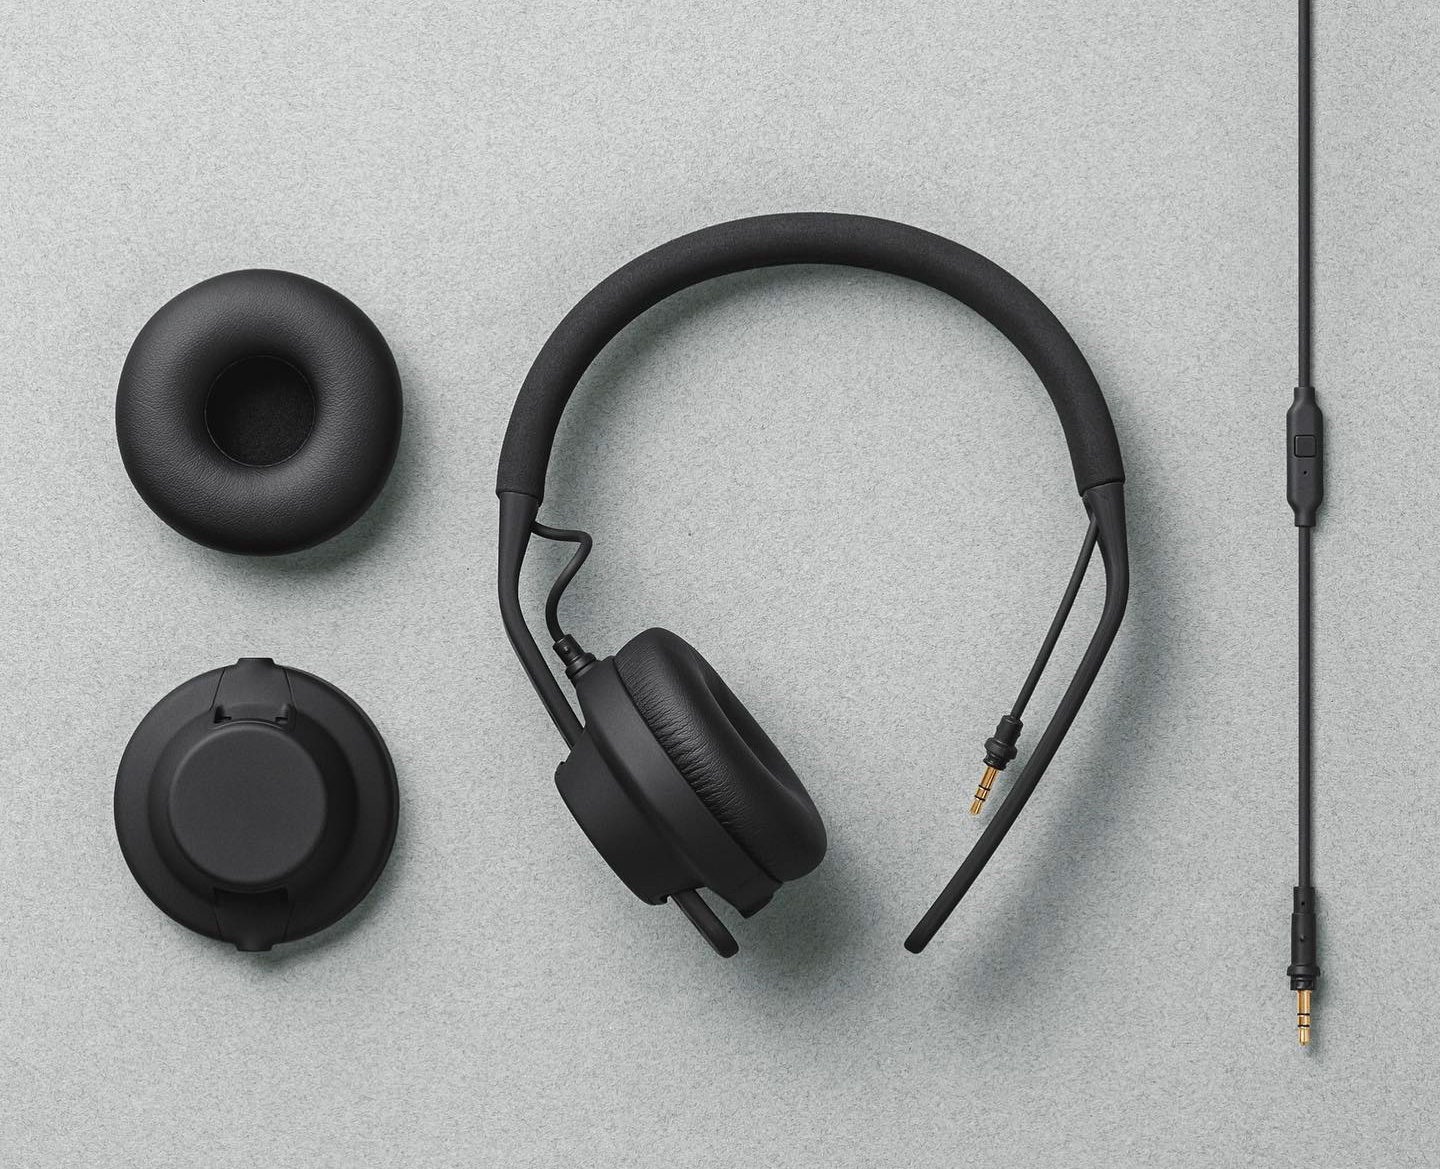 AIAIAI's TMA-2 Headphones Give You Awesome Options at werd.com